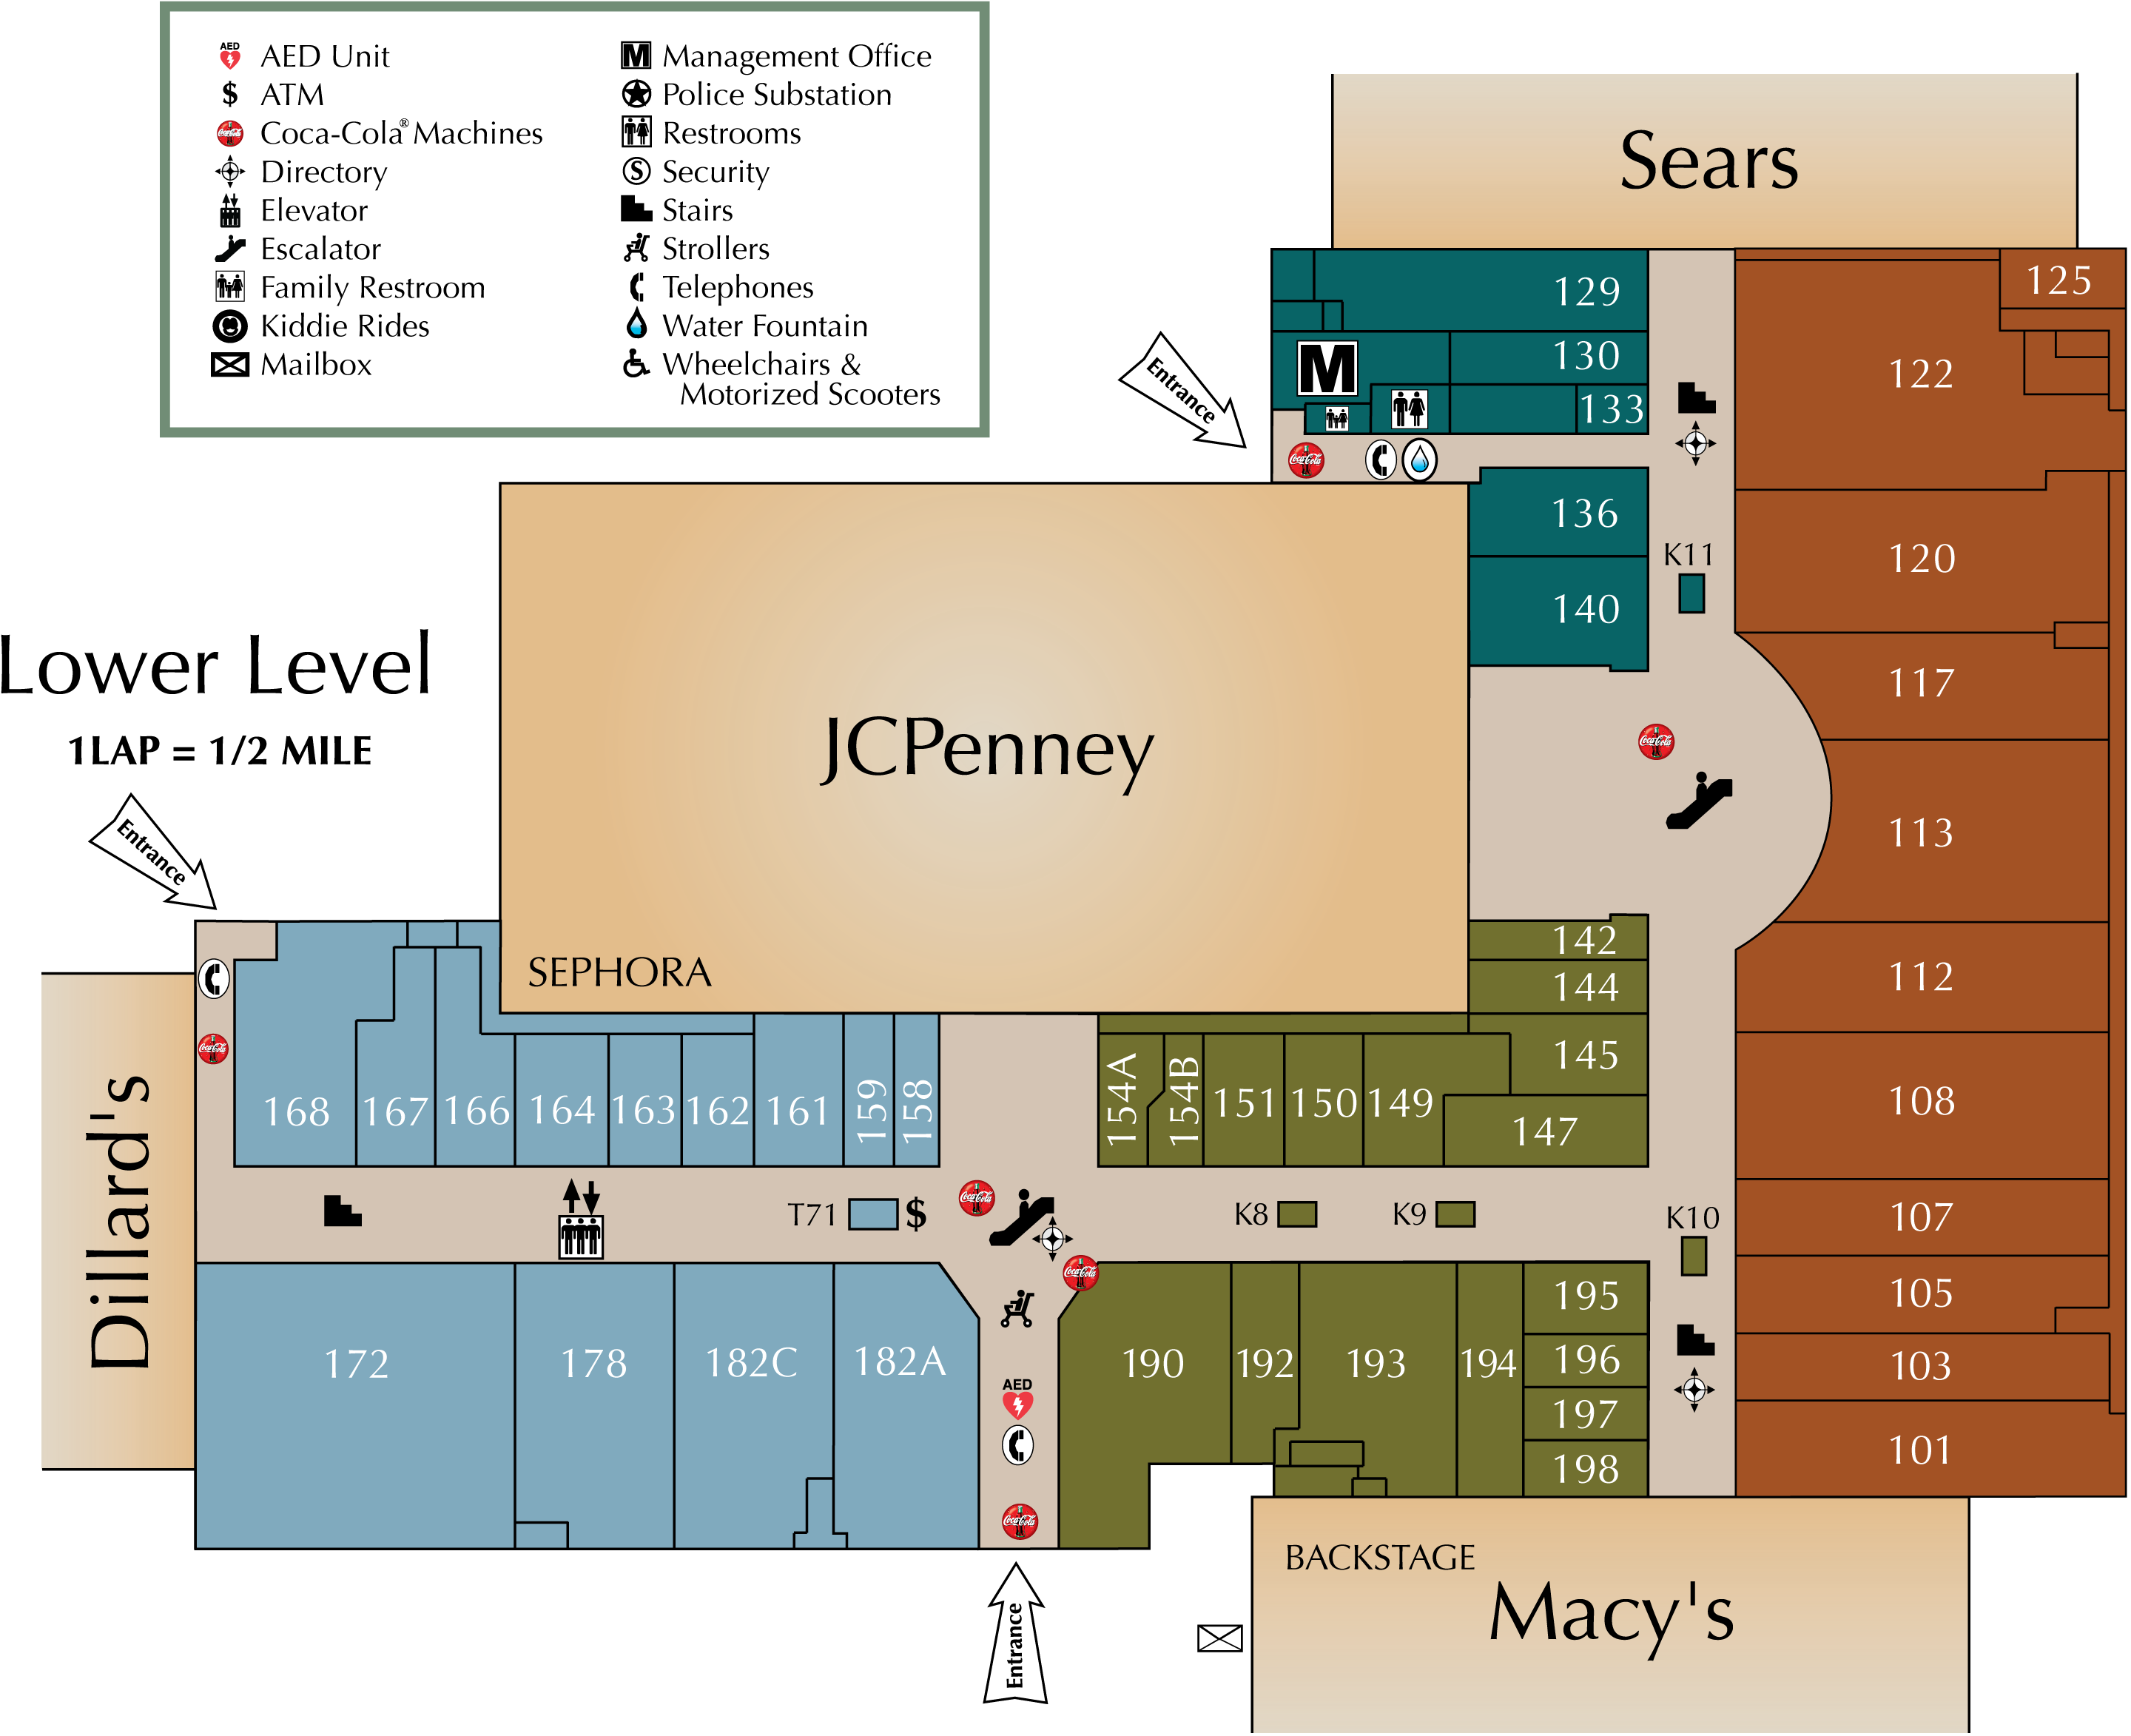 St. Clair Square lower level directory map